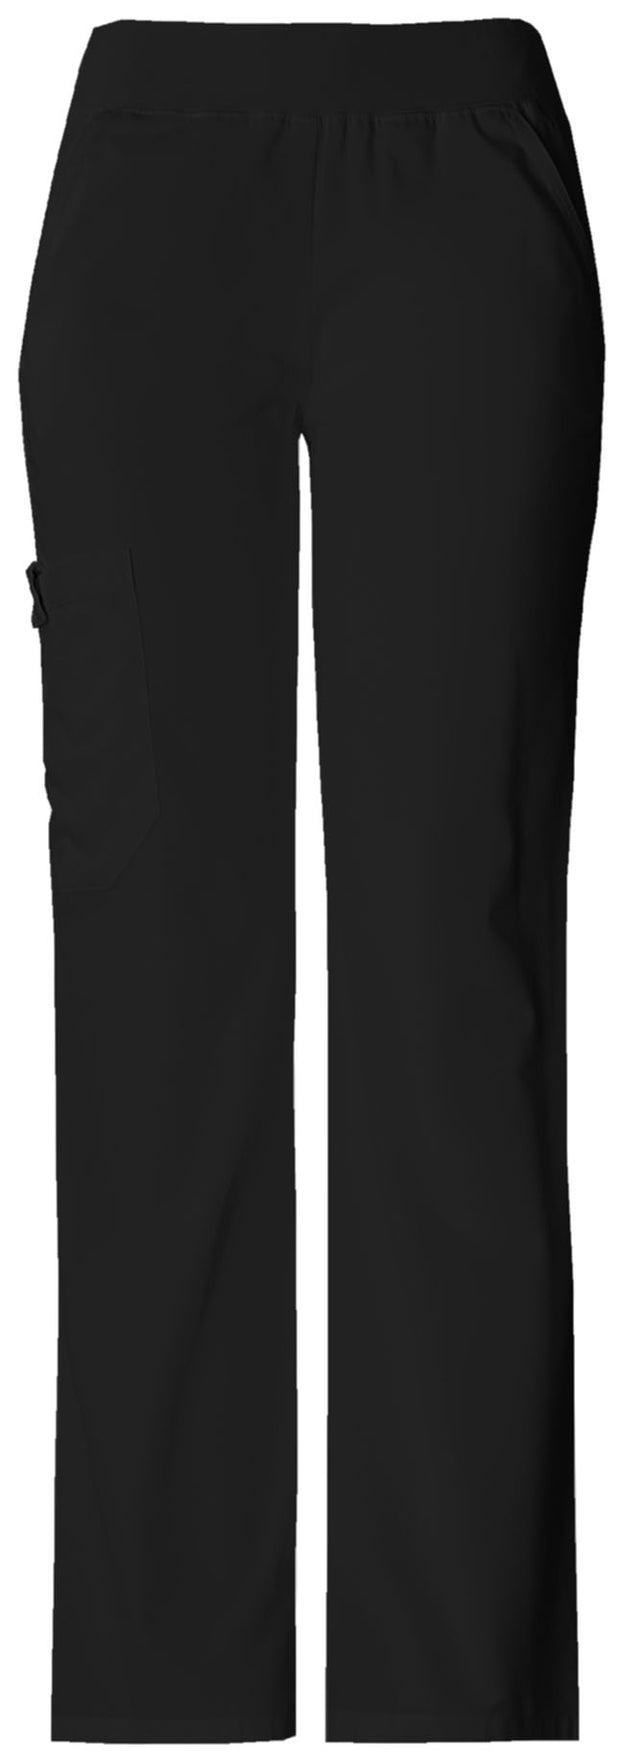 Cherokee Flexibles (Tonal) Women's Mid Rise Knit Waist Pull-On Pant - 2085T  Tall